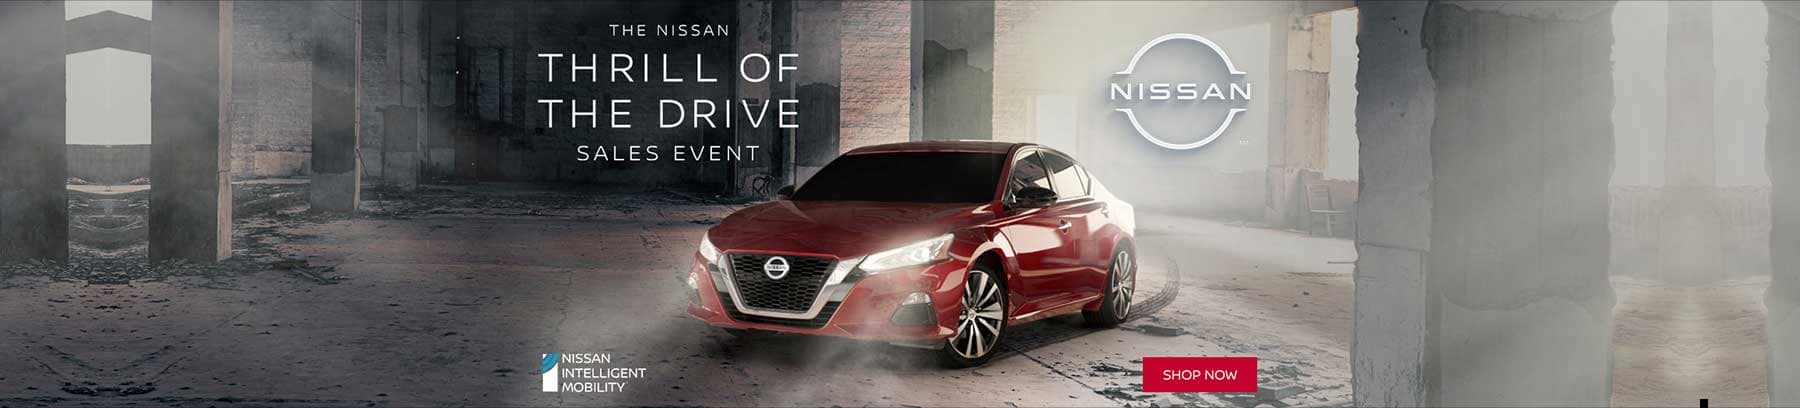 The Nissan Thrill Of The Drive Sales Event